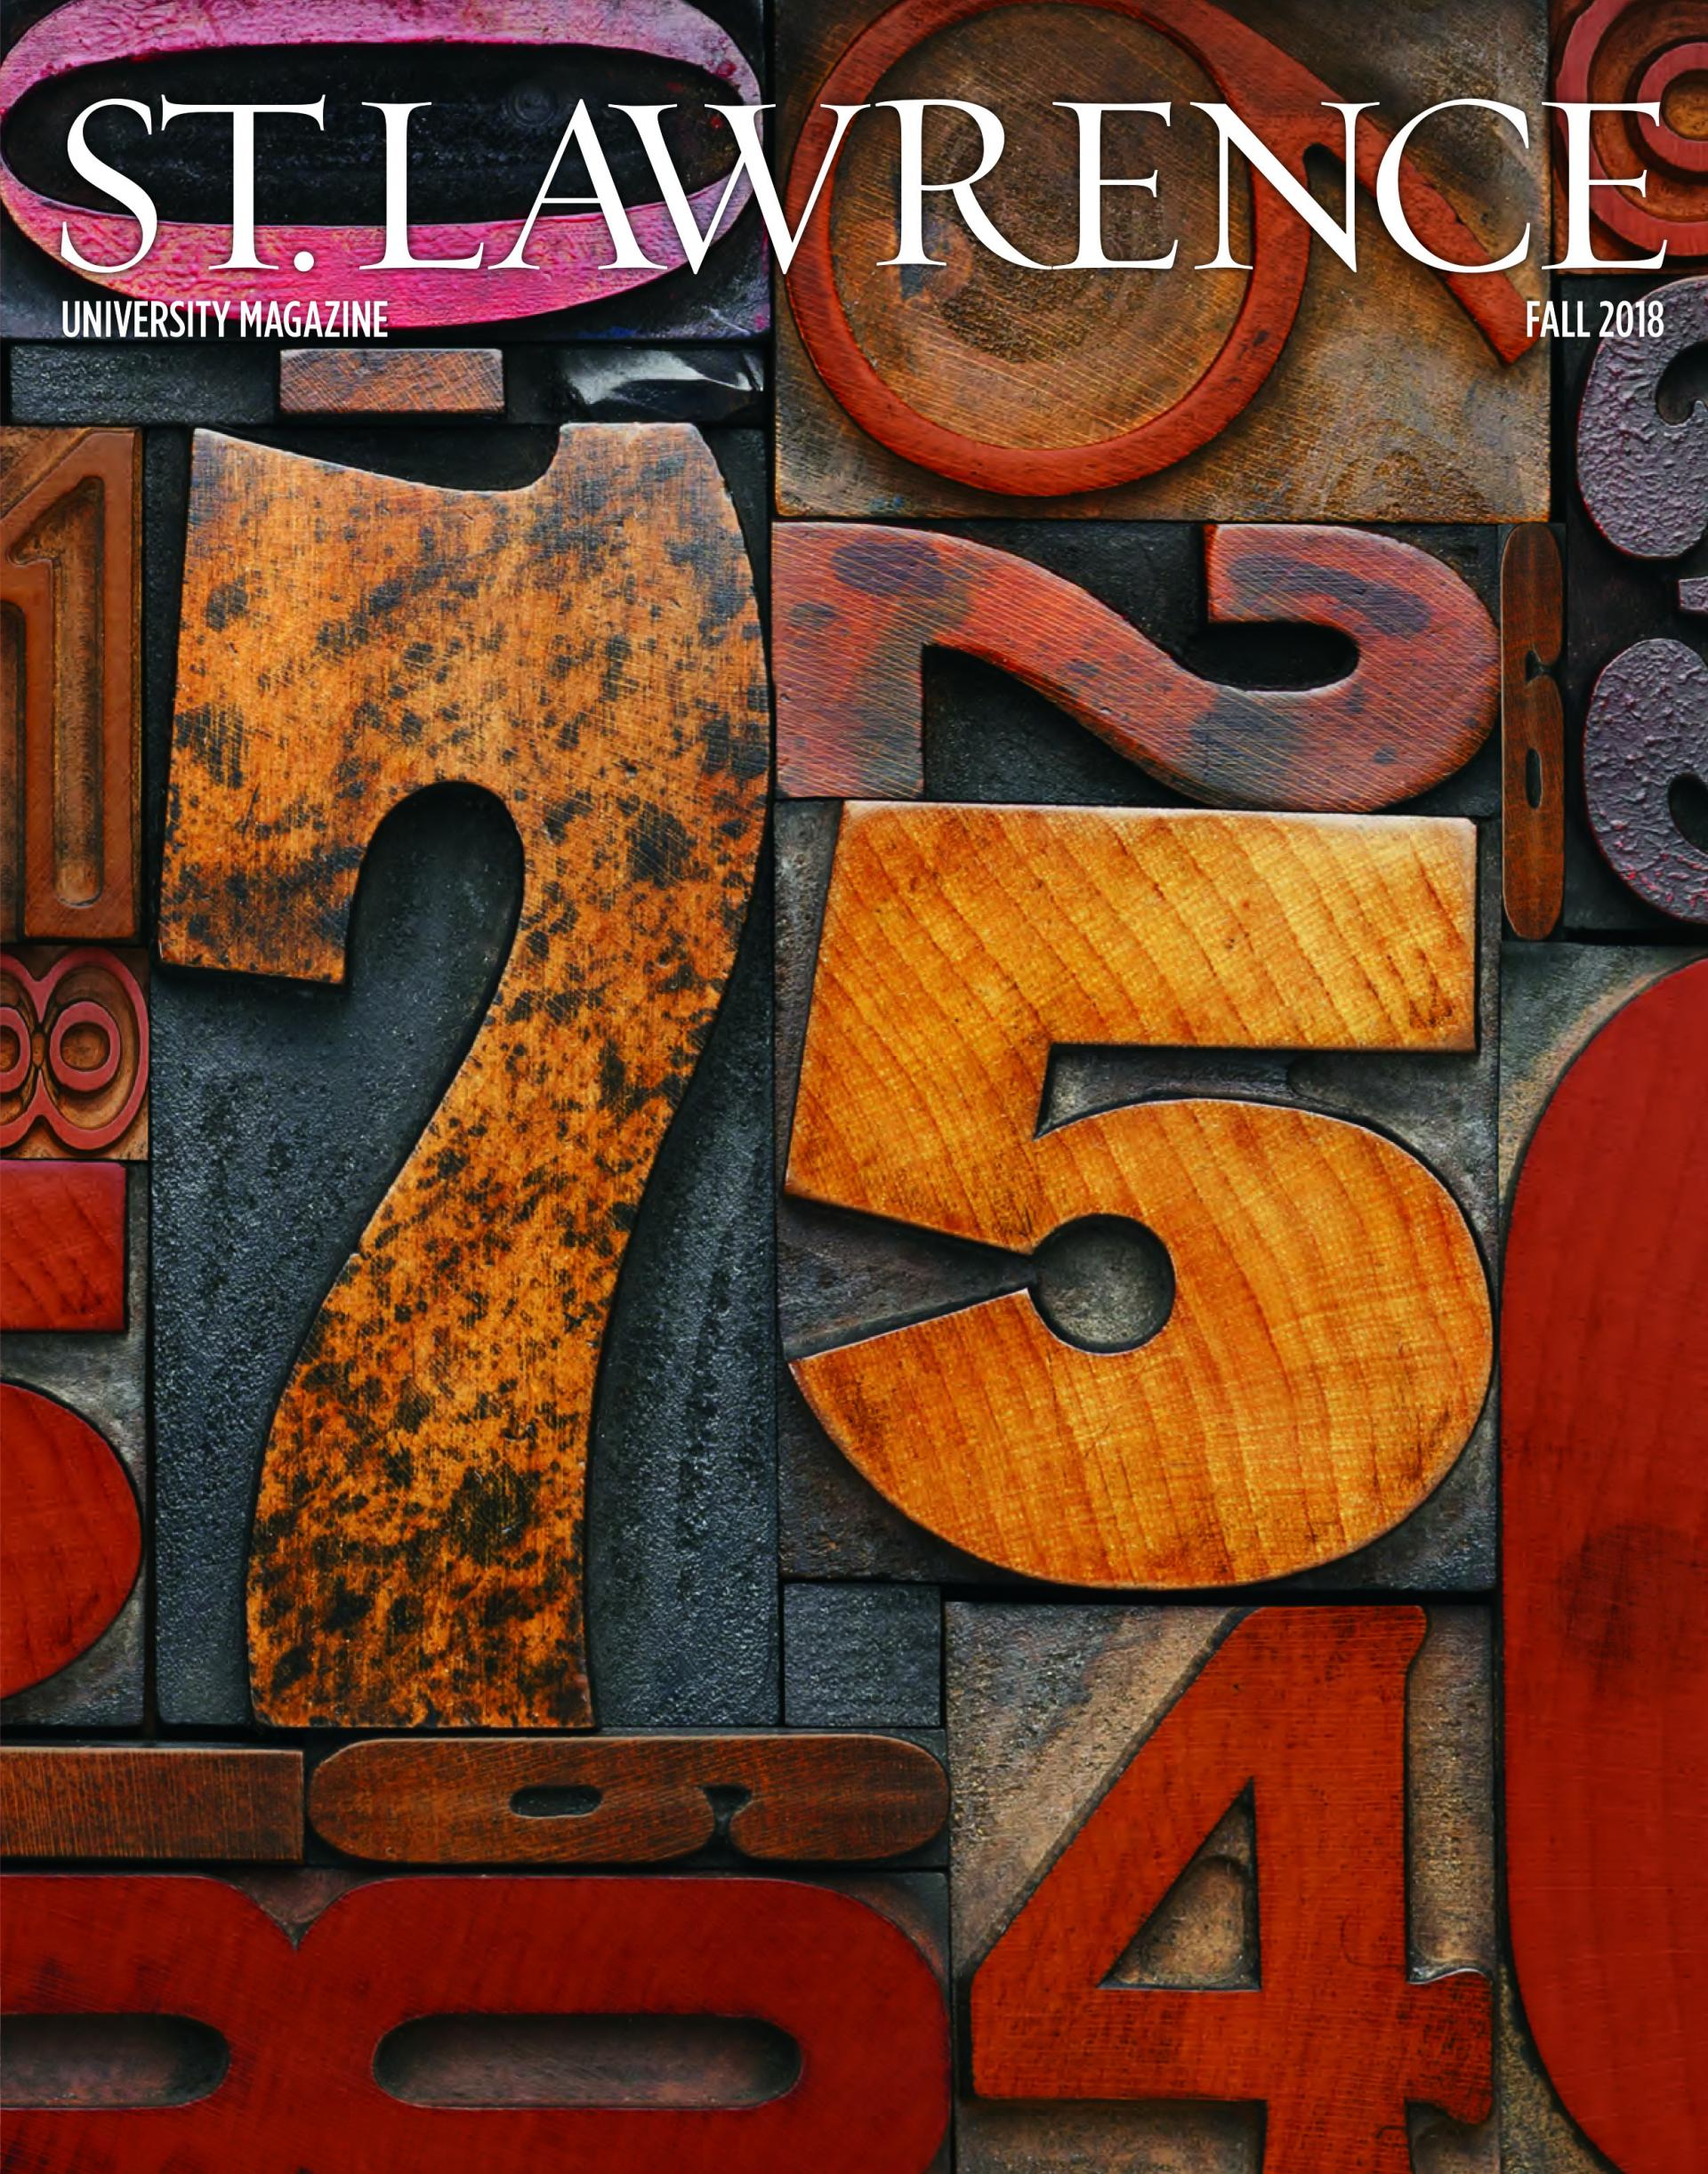 The print cover of the Fall 2018 St. Lawrence magazine